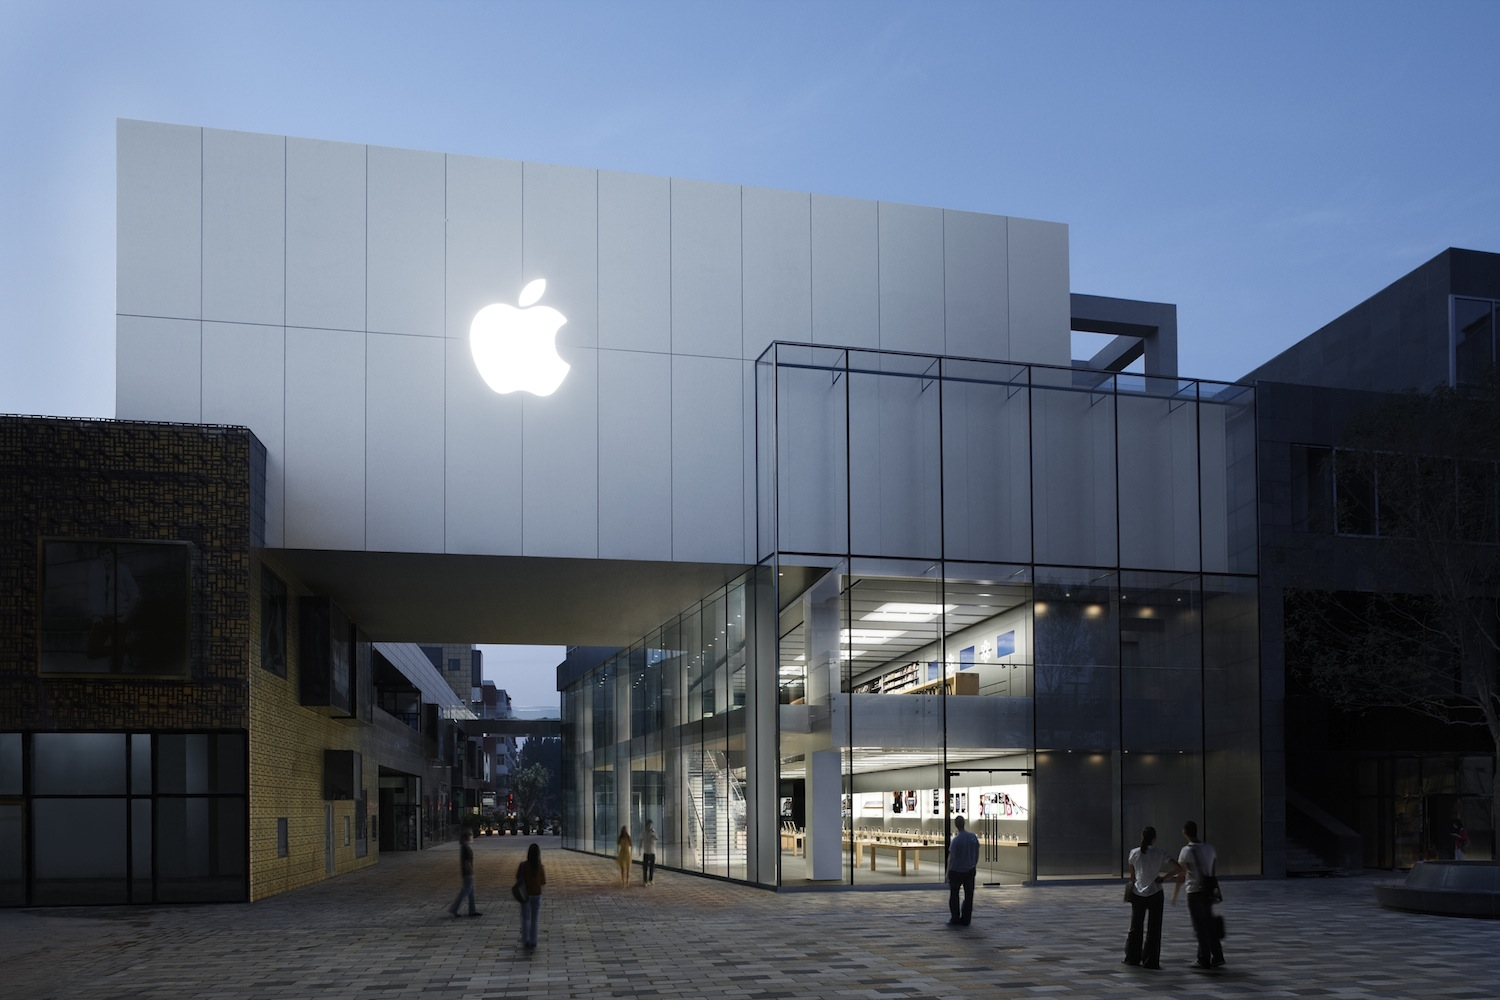 Apple To Begin Offering 3G iPad 2s In China